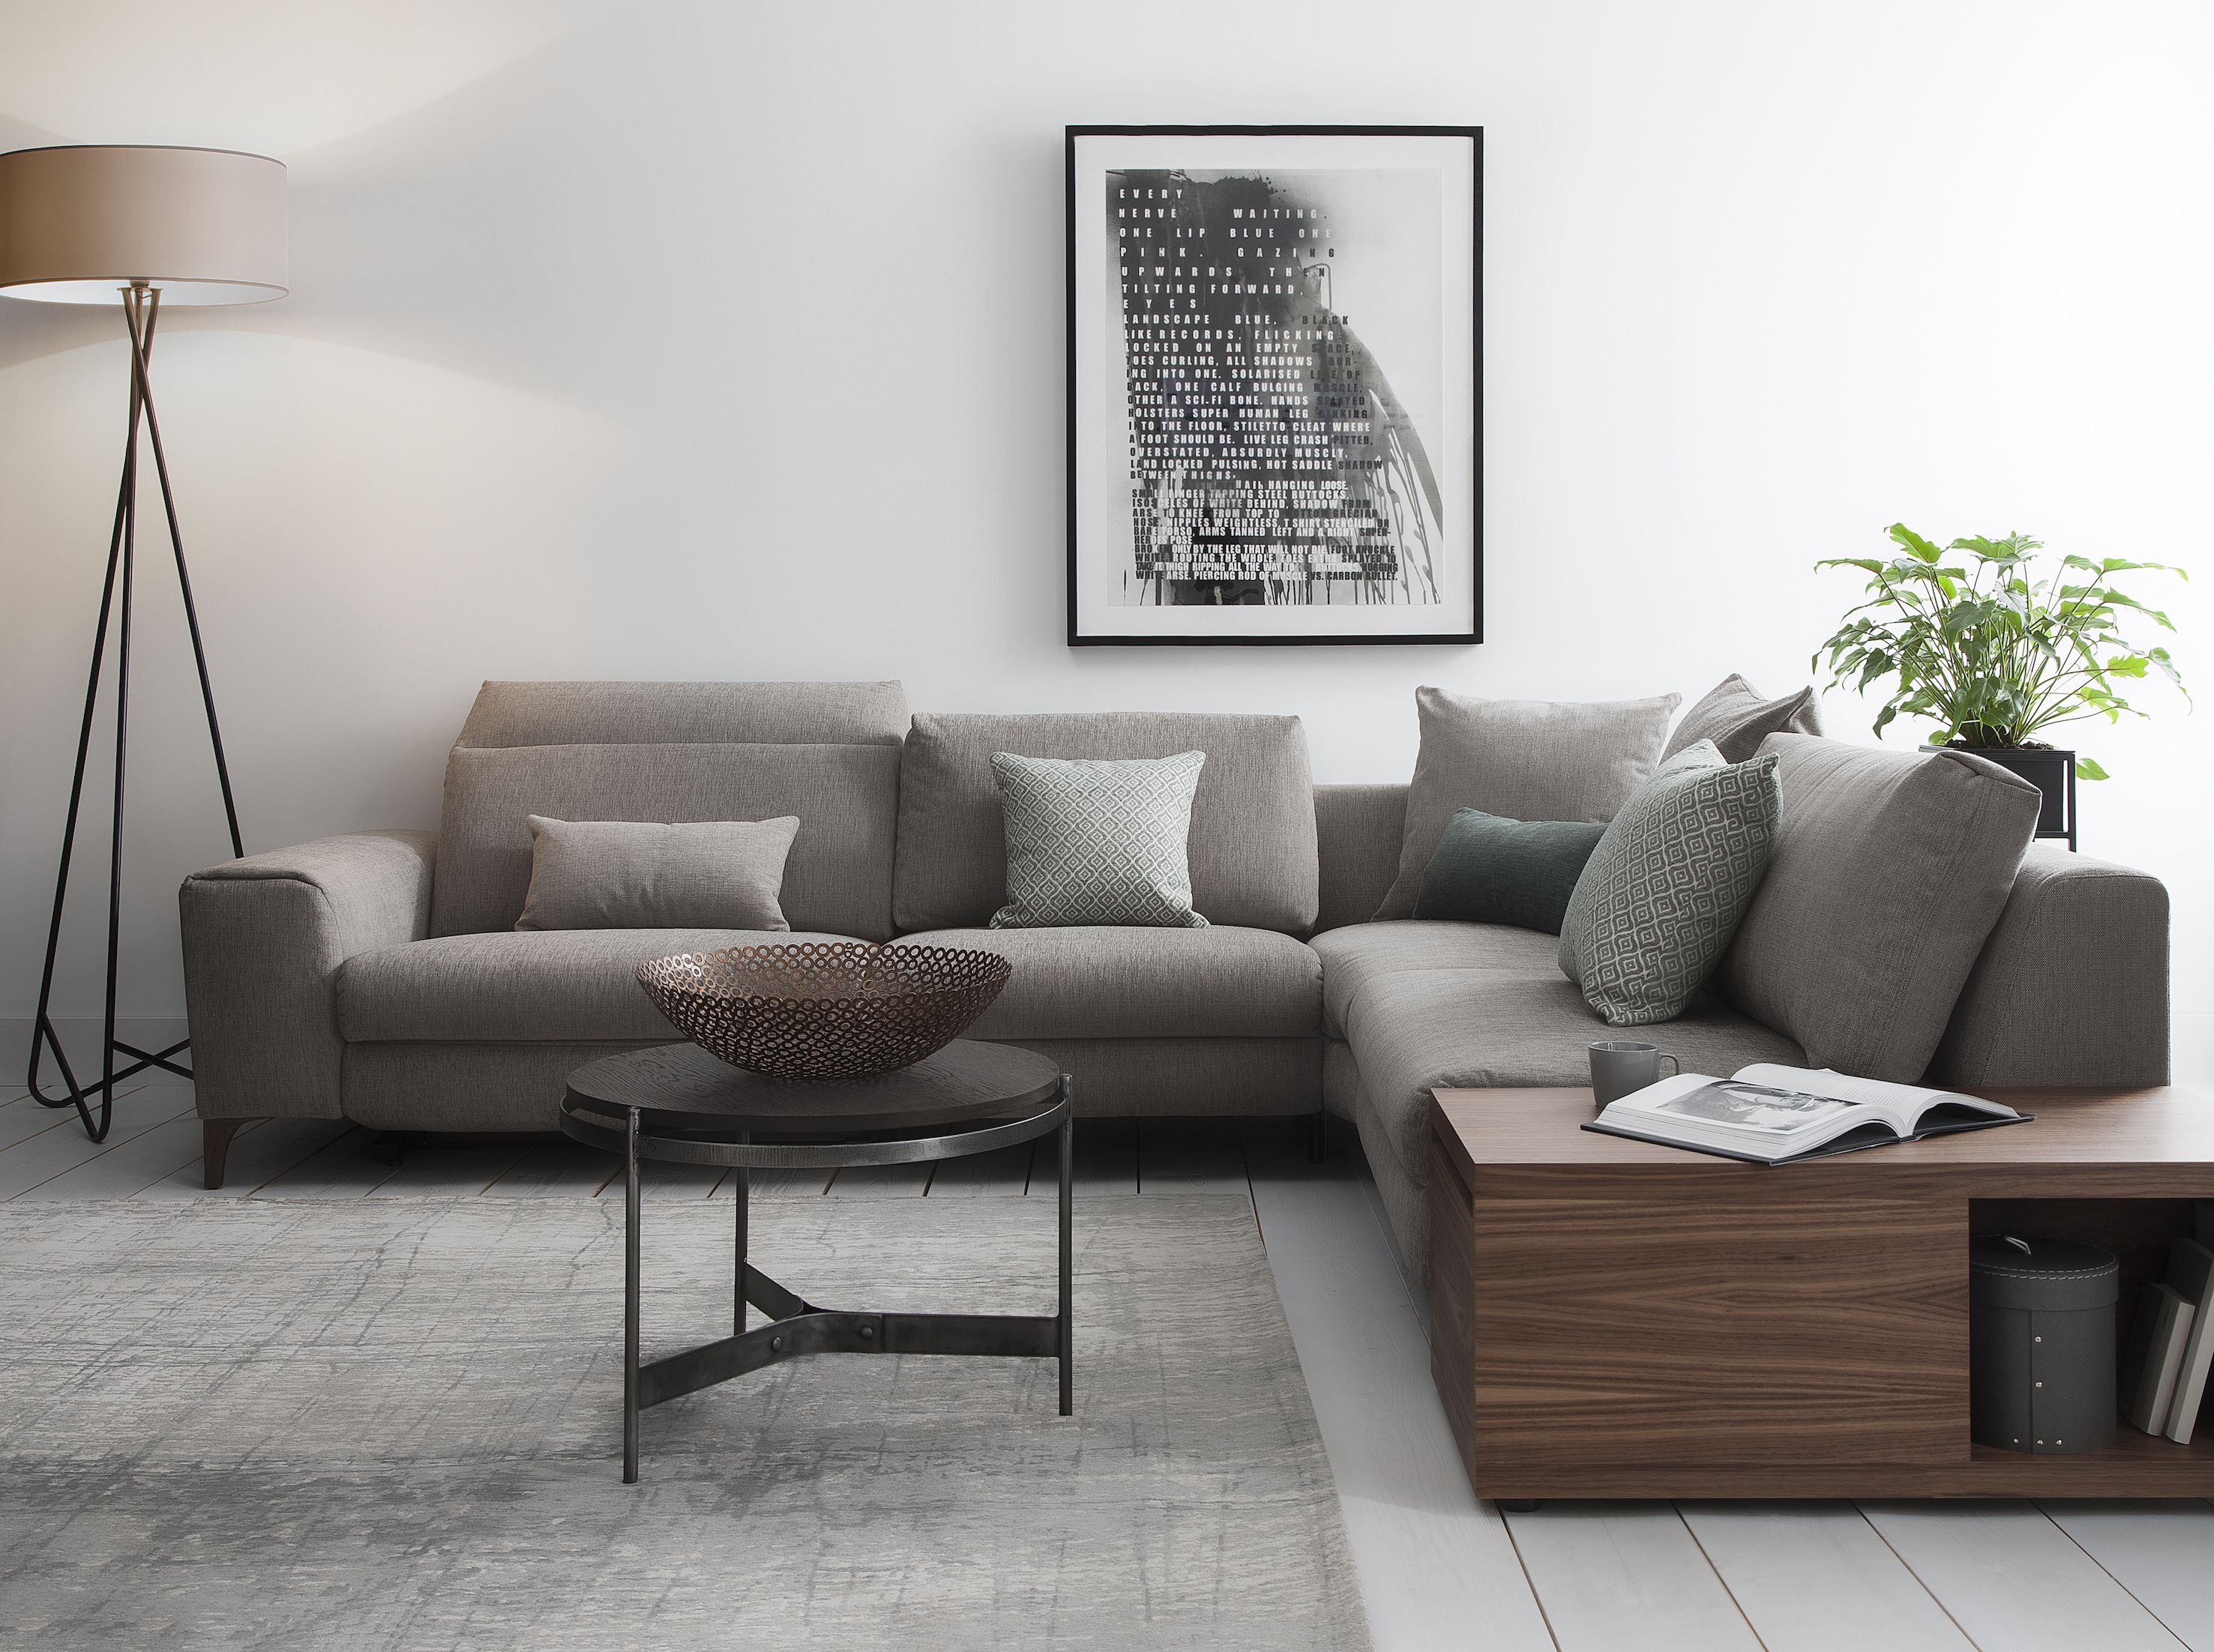 Canapé Relax Geant Du Meuble Check Out Our New Rom Donato Sofa Signature Luxury Sofa